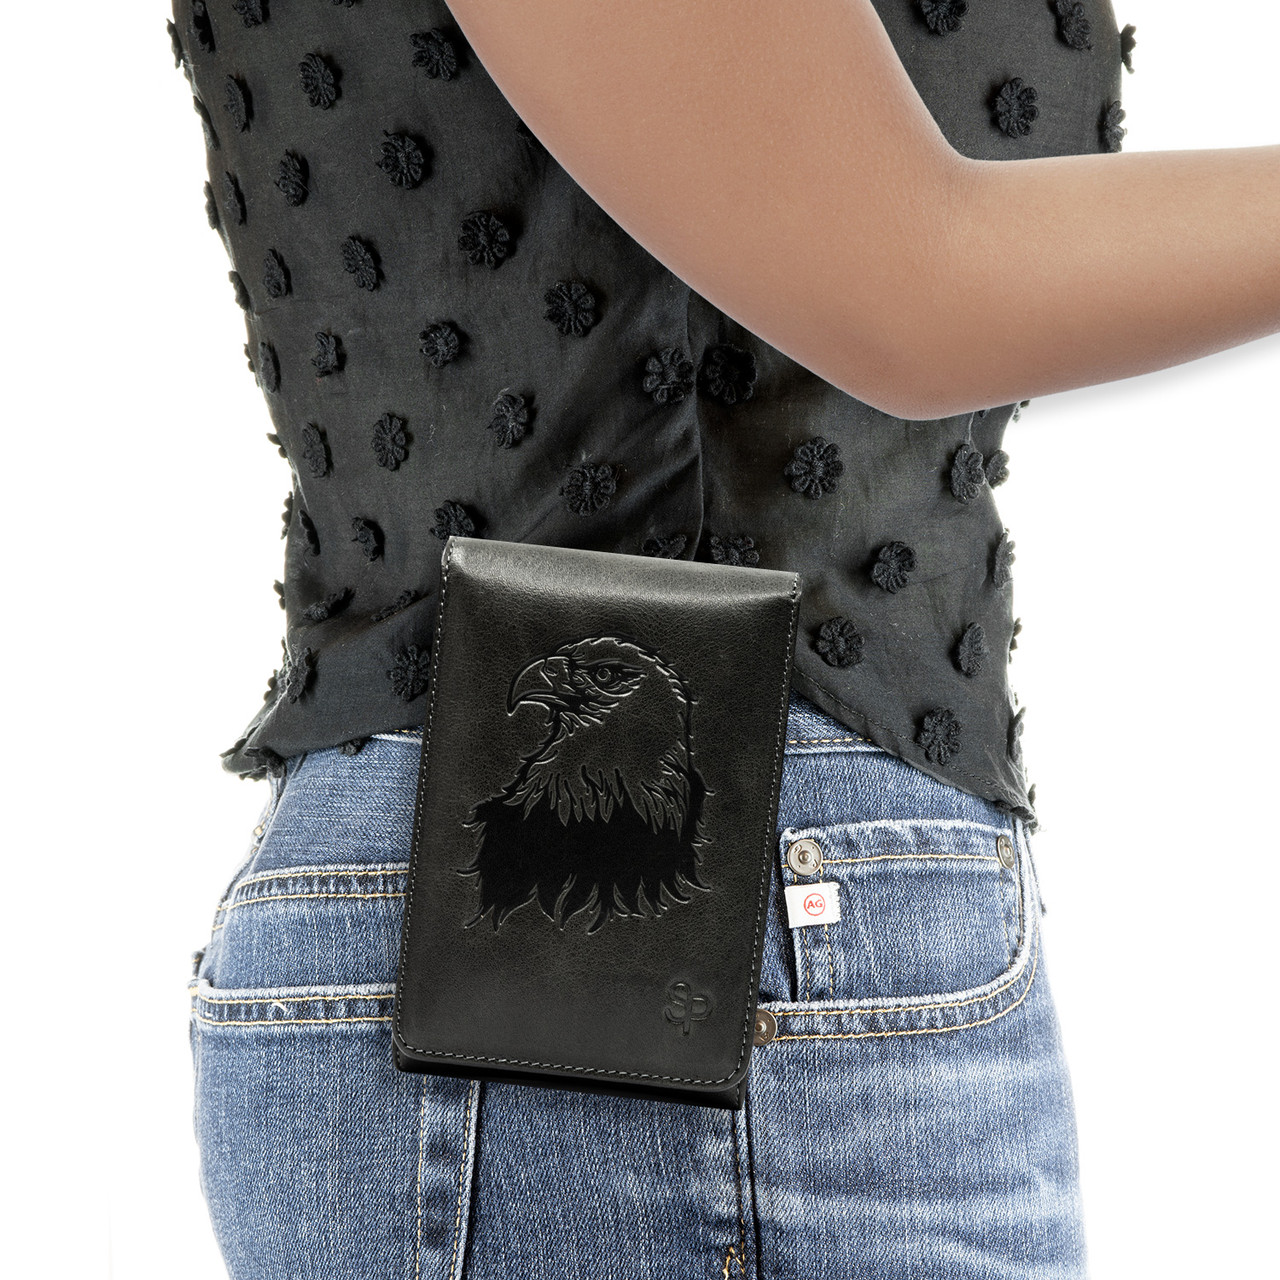 Walther PPK/S Black Freedom Series Holster